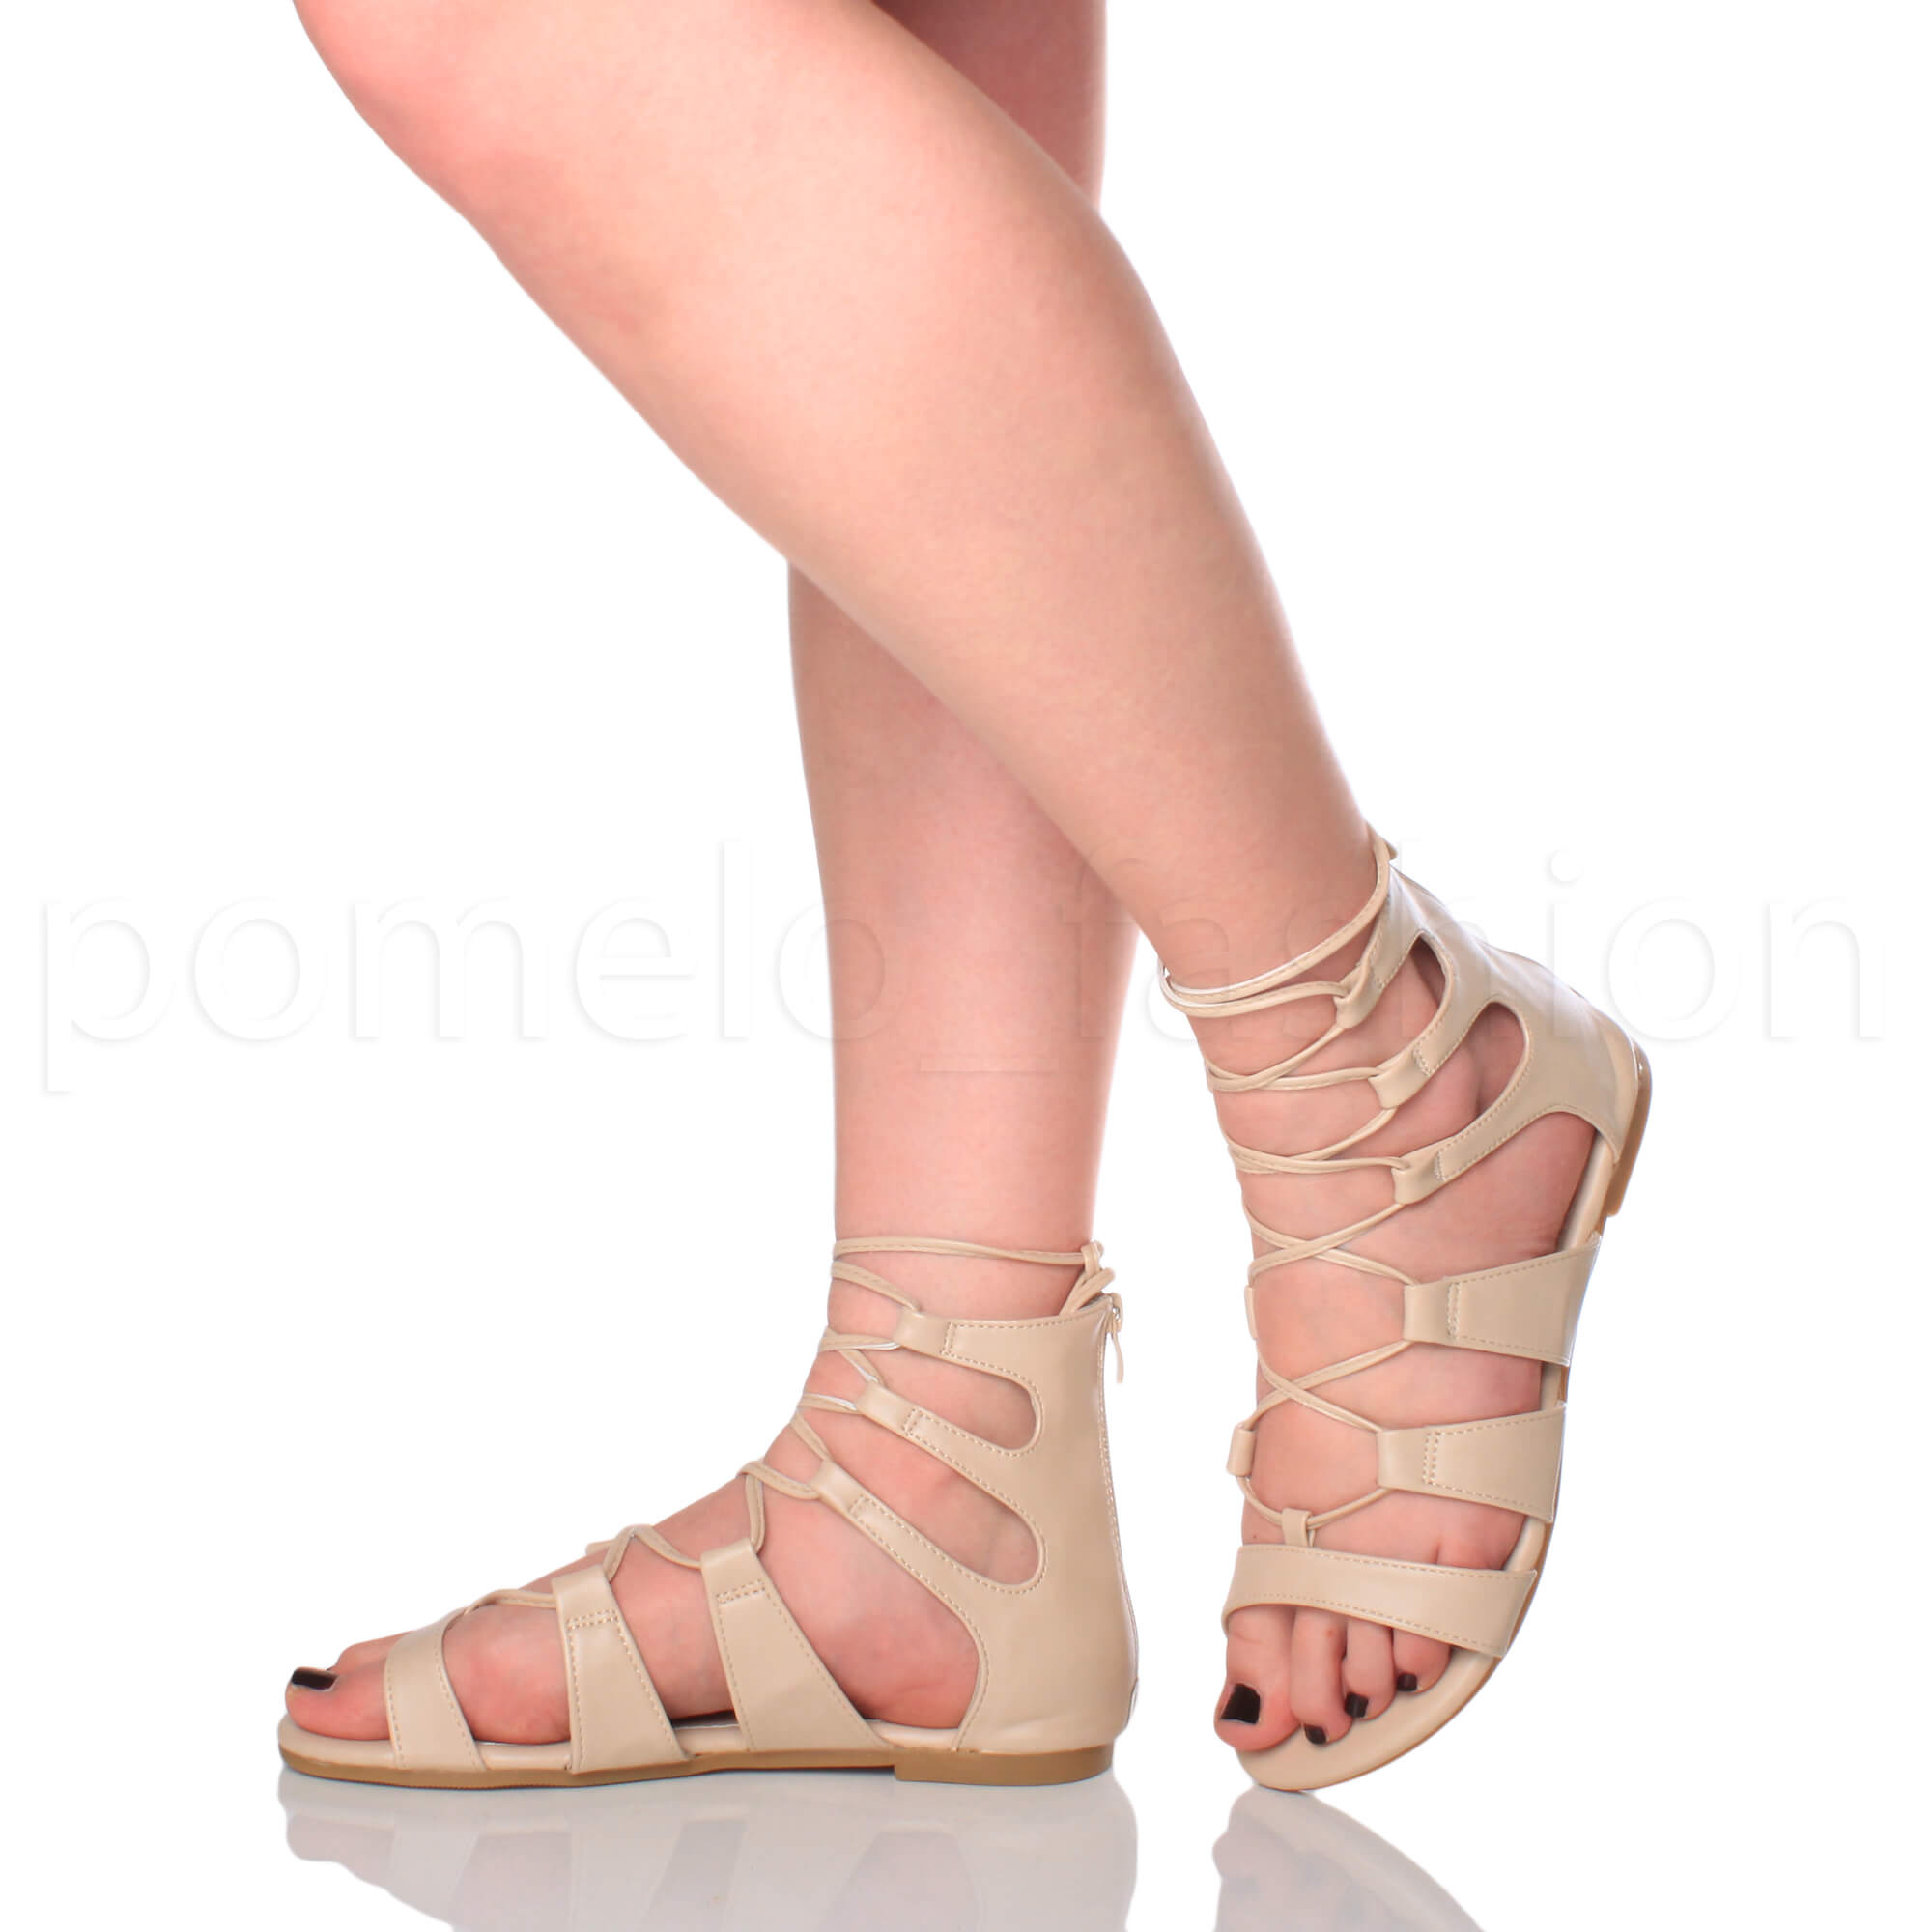 628e0bb1f33 ... Ladies Lace up Cross Over Wrap Around Strappy Gladiators Sandals Size  UK 3   EU 36   US 5 Nude Matte. About this product. Picture 1 of 2  Picture  2 of 2